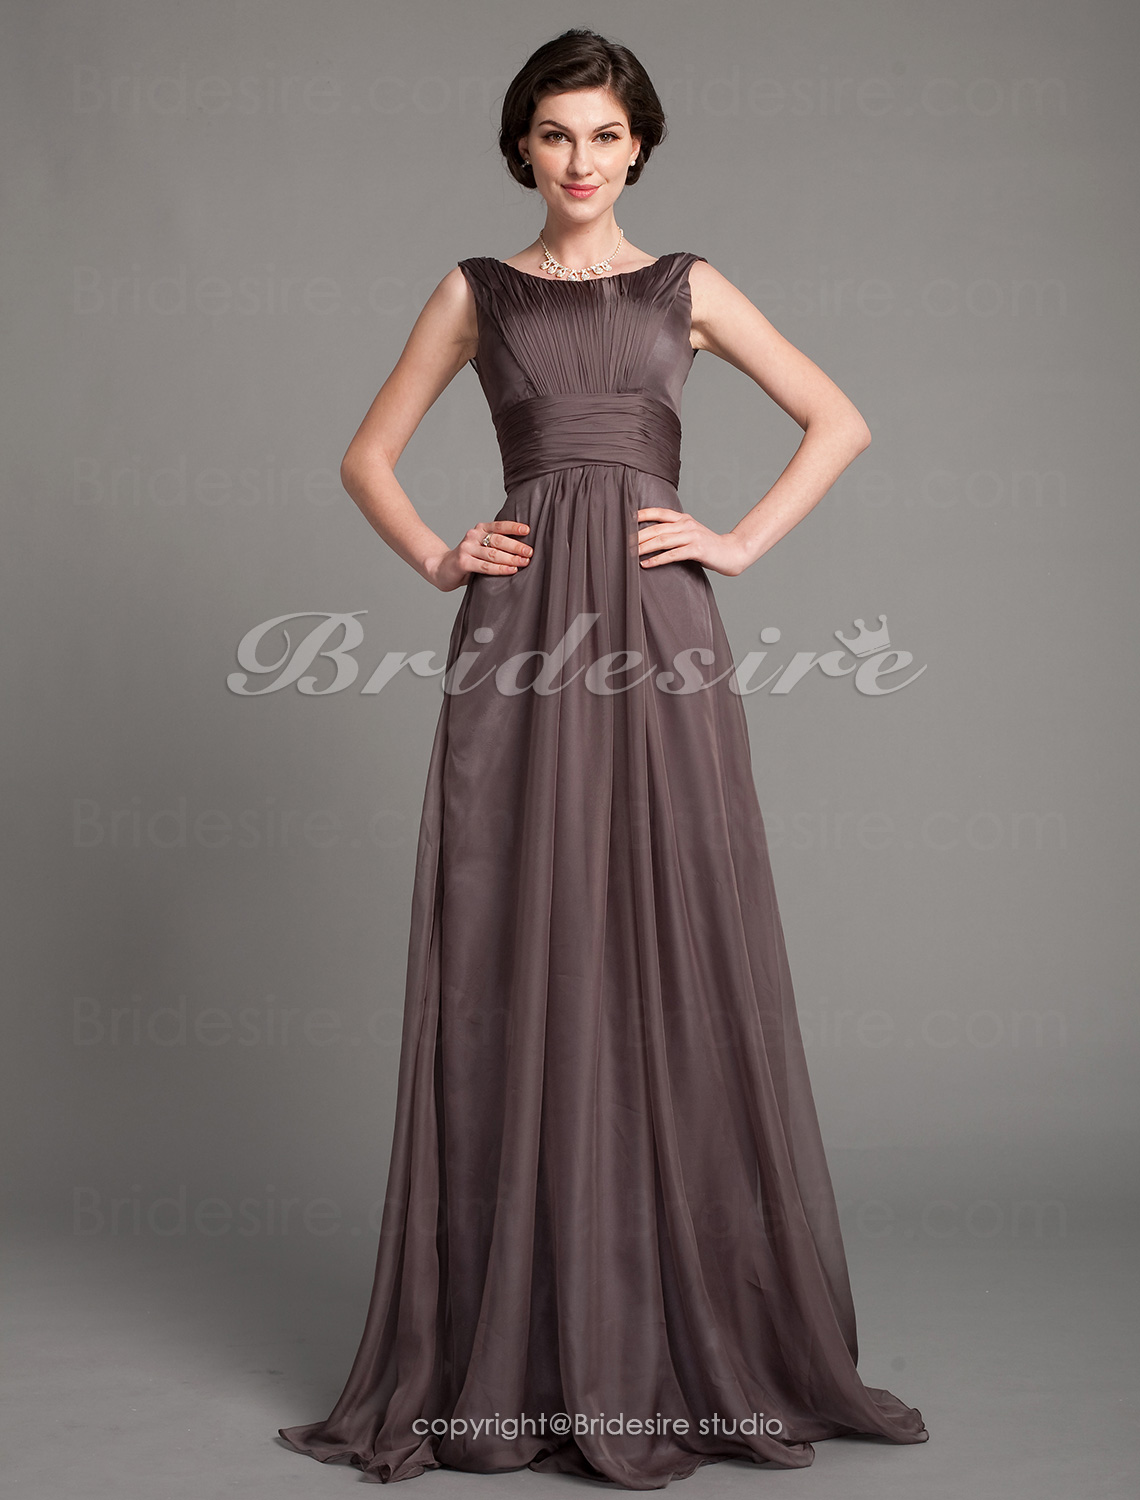 Bridesire Sheath Column Chiffon Floor Length Bateau